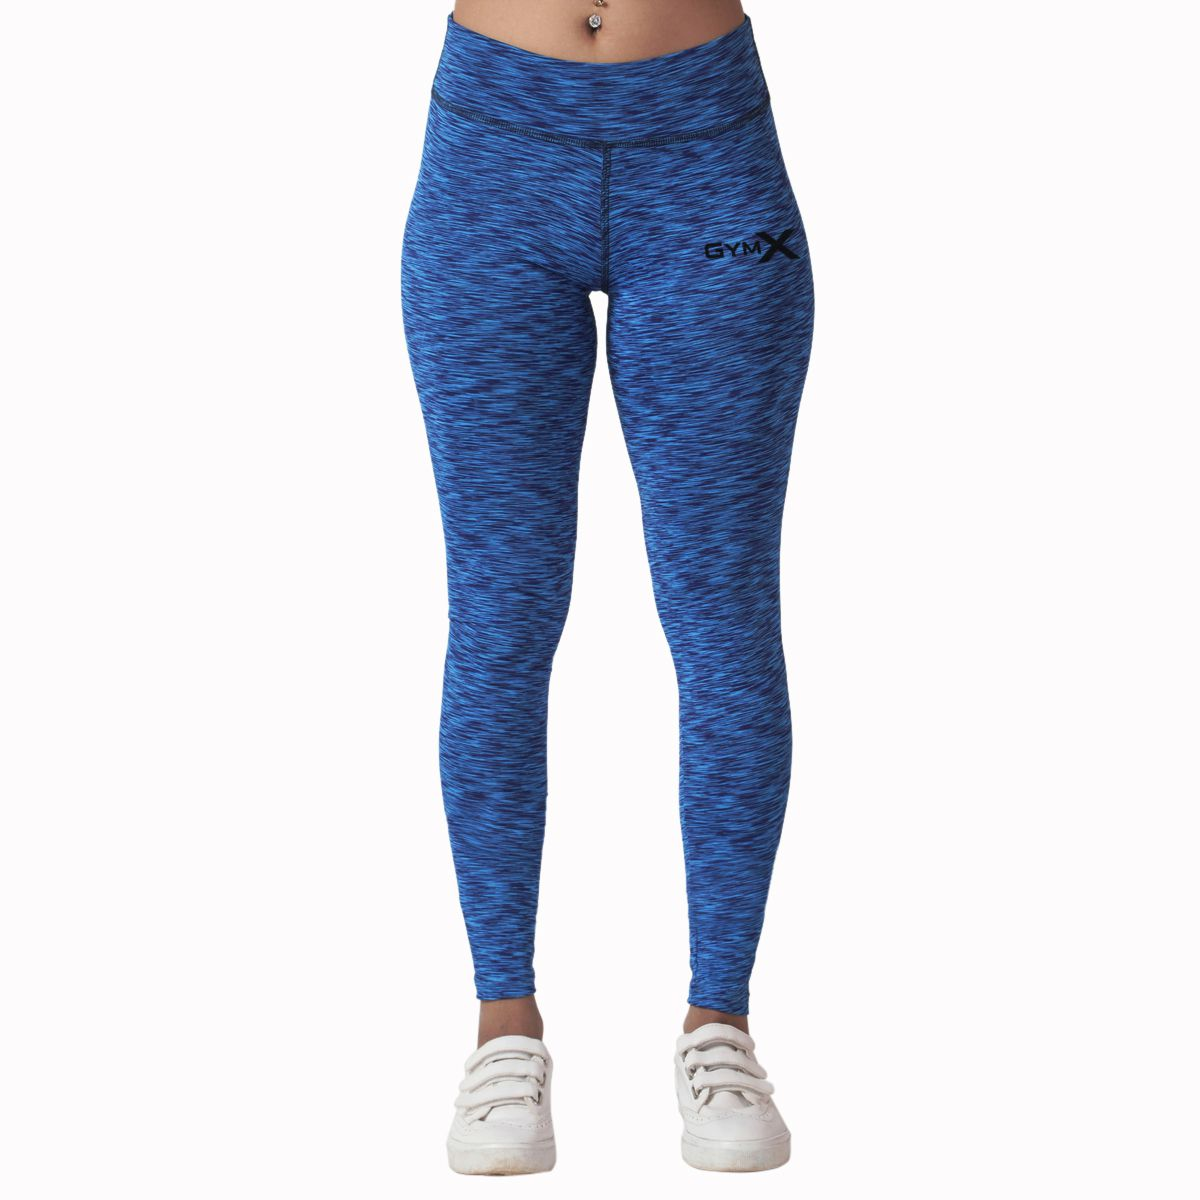 GymX Womens Polyester Sculpted Leggings 2.0: Blue Airstrip (Size:Small)